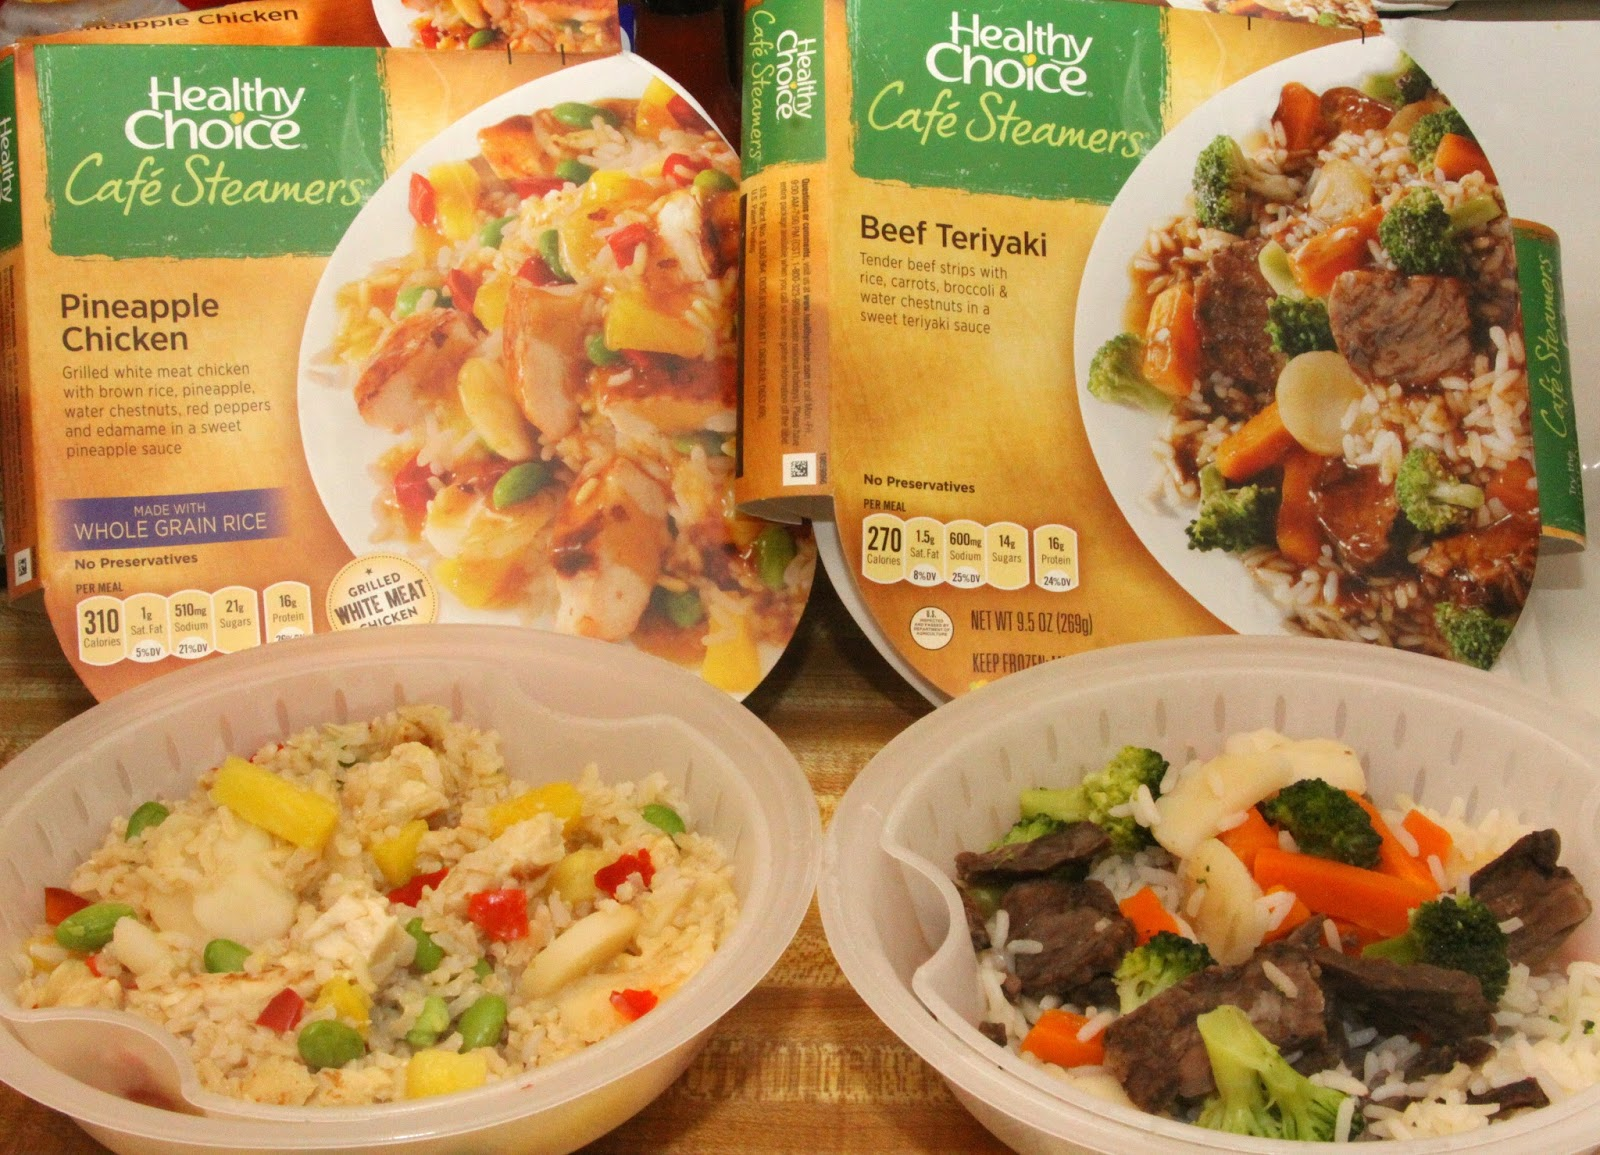 healthy choice cafe steamers cooking instructions